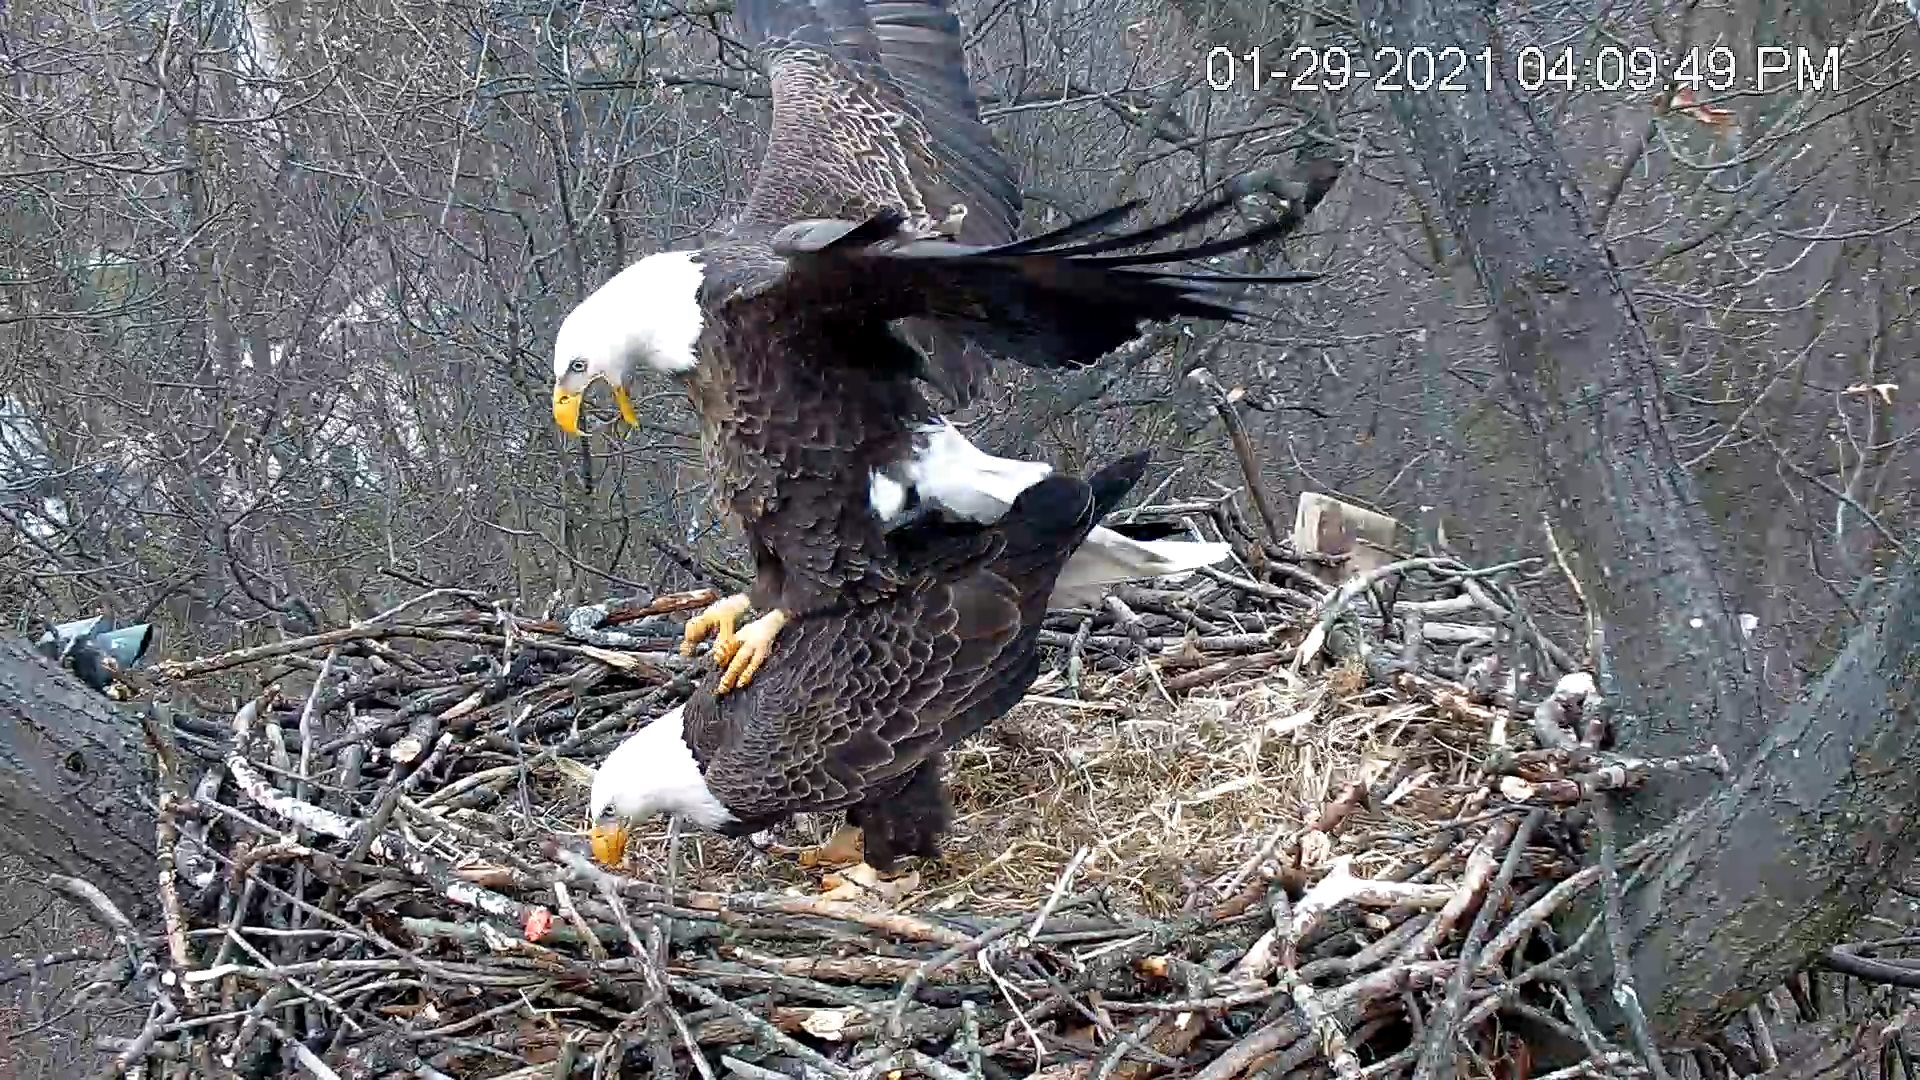 Hanover Eagles engaged in copulation, the male eagle balancing on the females back.